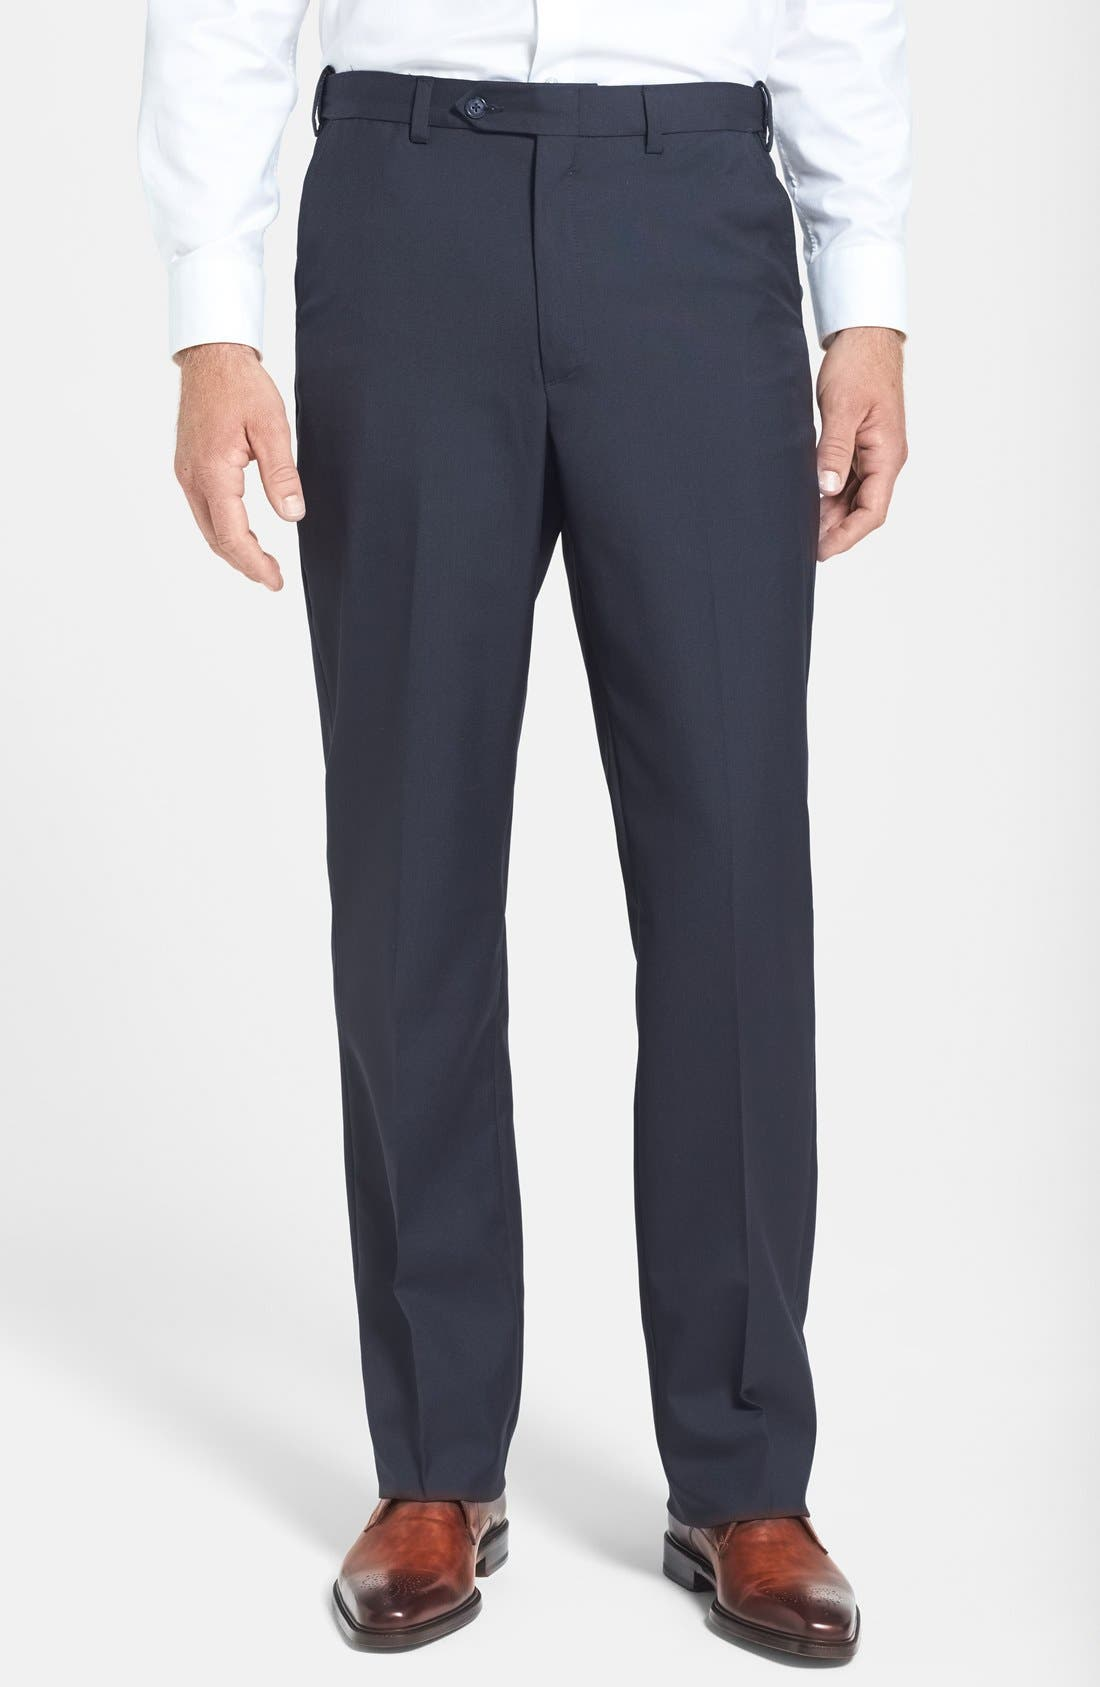 BERLE, Self Sizer Waist Tropical Weight Flat Front Trousers, Main thumbnail 1, color, NAVY